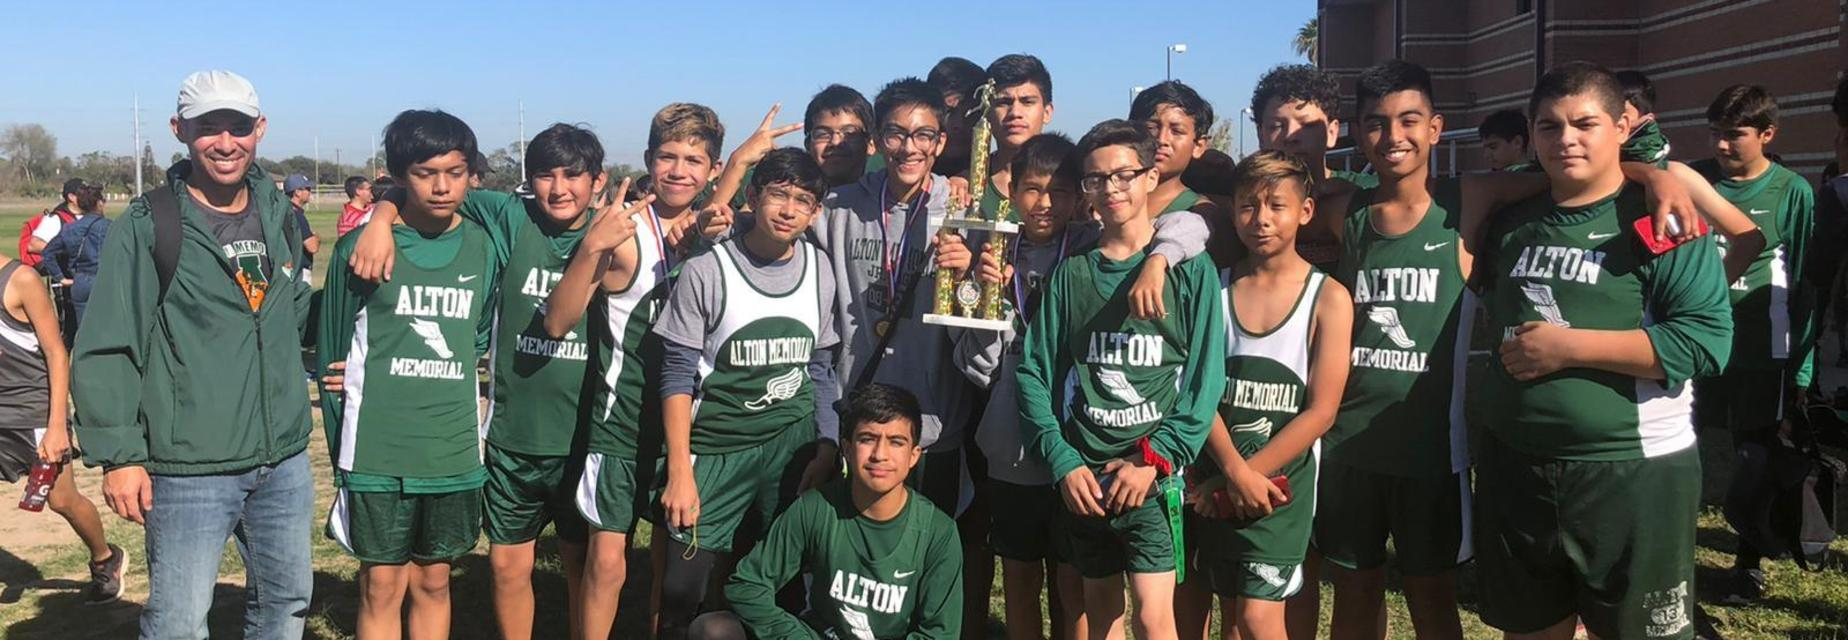 2019 7th Grade Boys Cross Country District Champions!